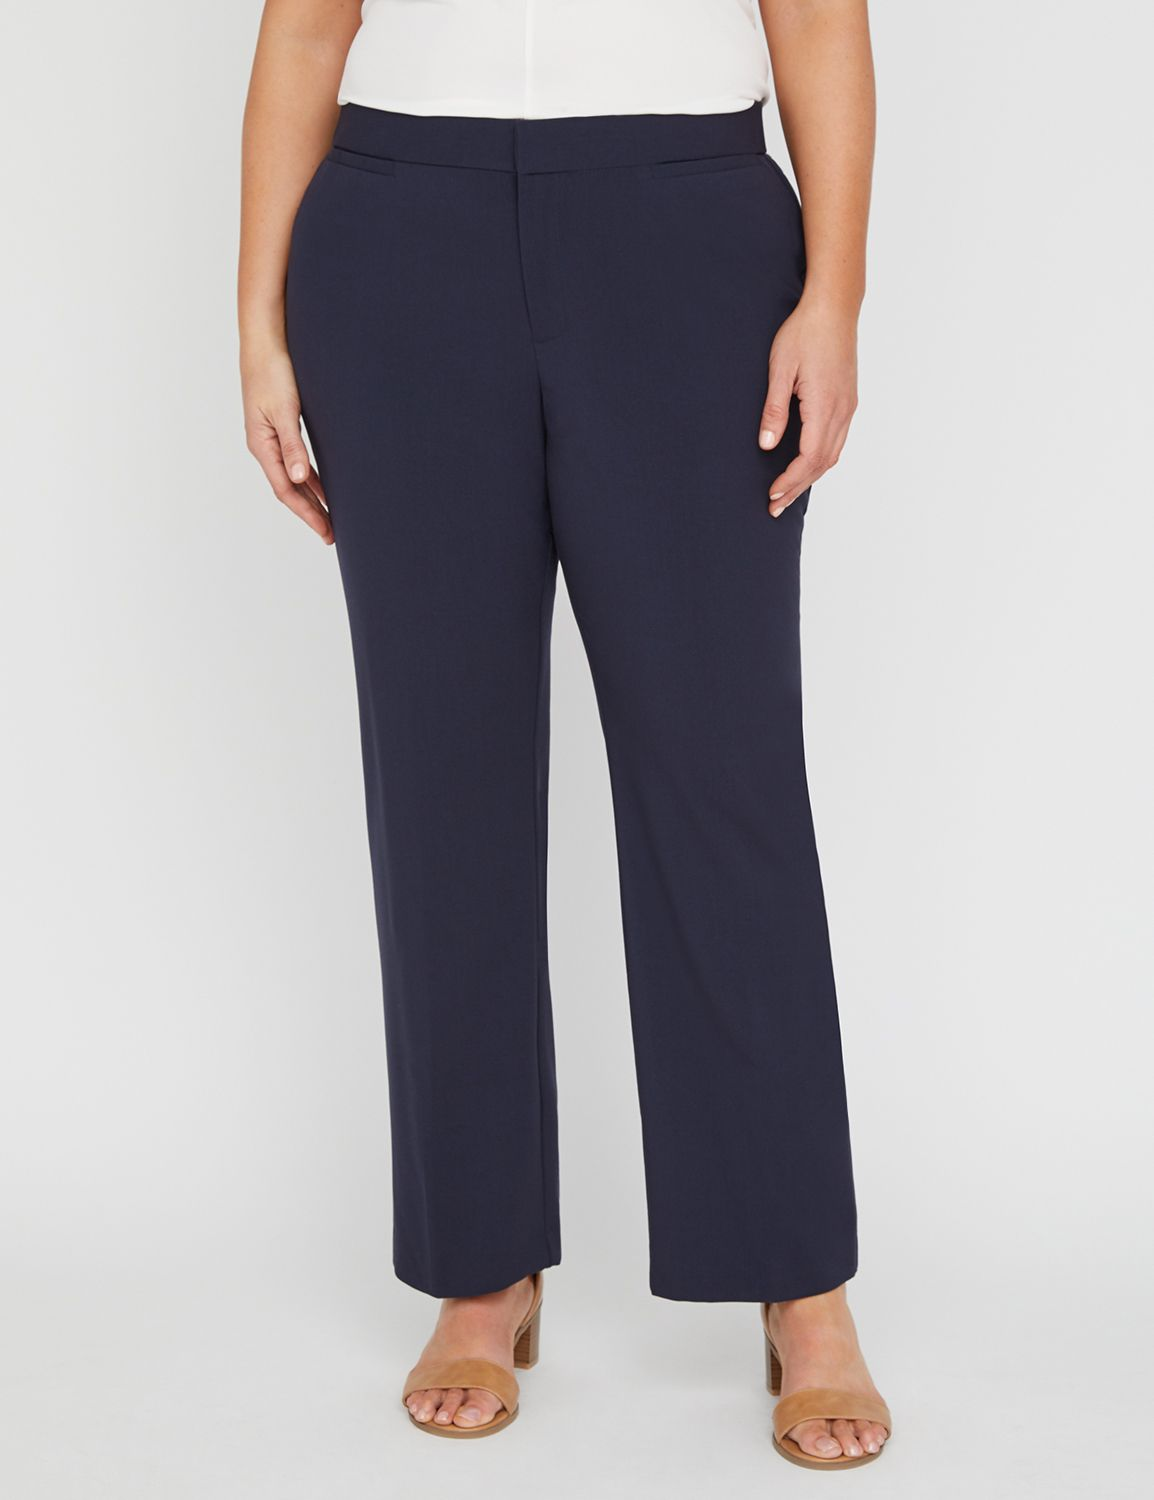 Right Fit Pant (Moderately Curvy) Right Fit Pant (Moderately Curvy) MP-300043665